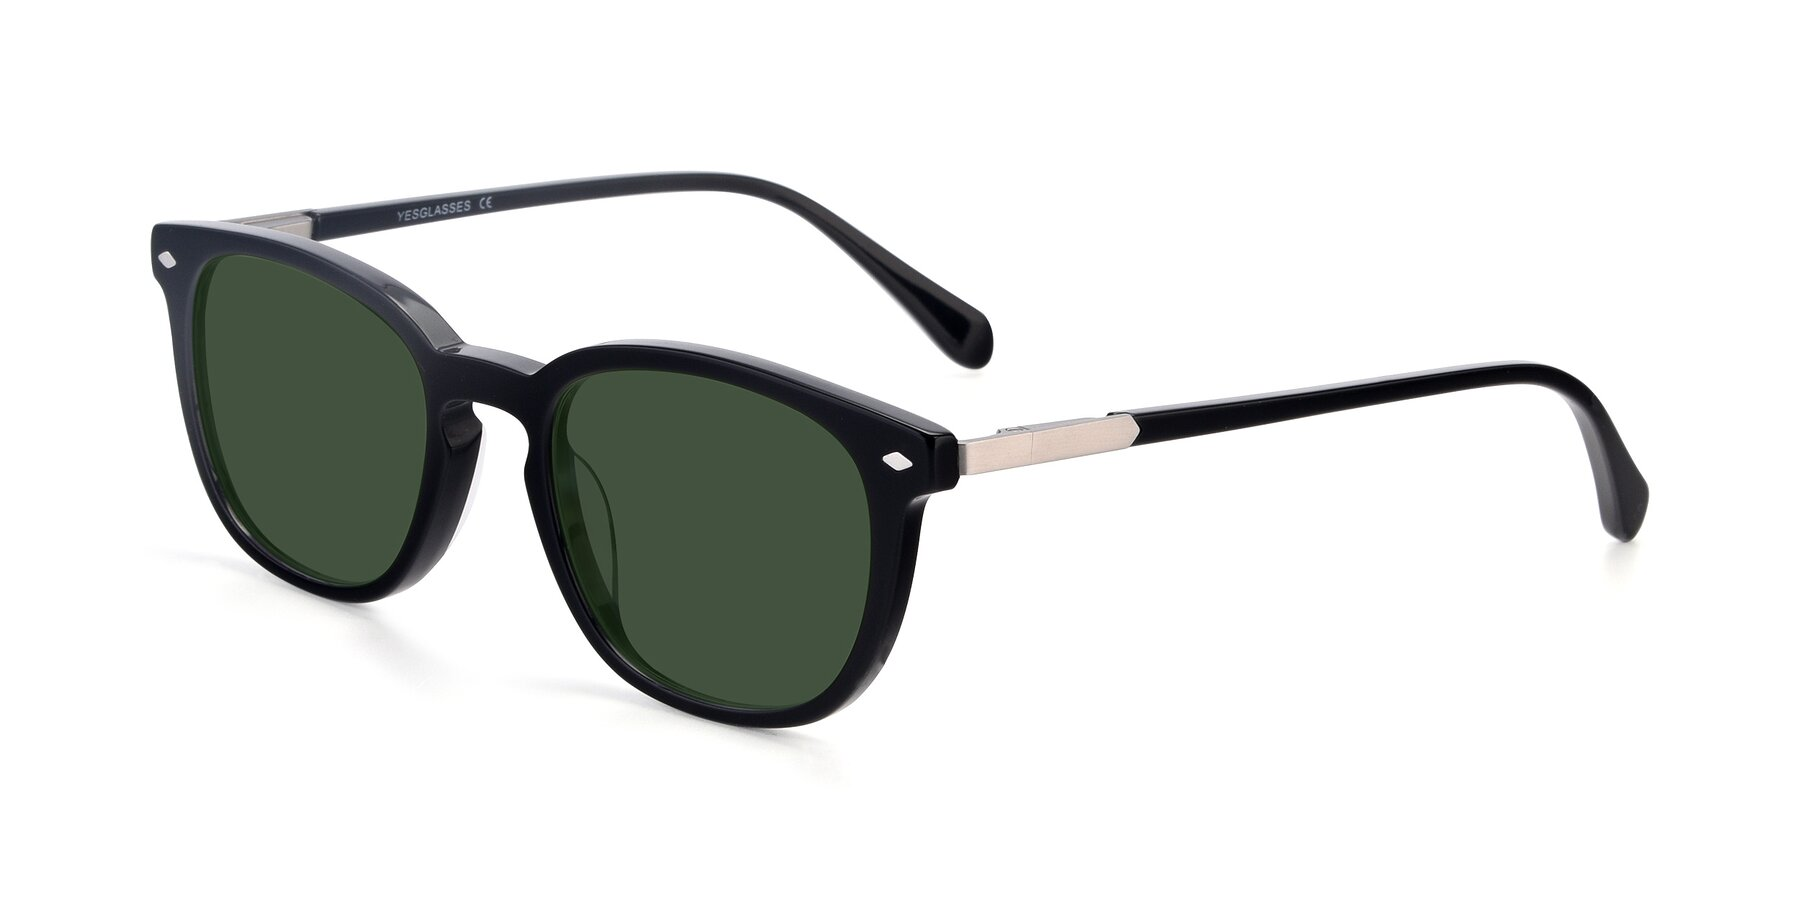 Angle of 17578 in Black with Green Tinted Lenses